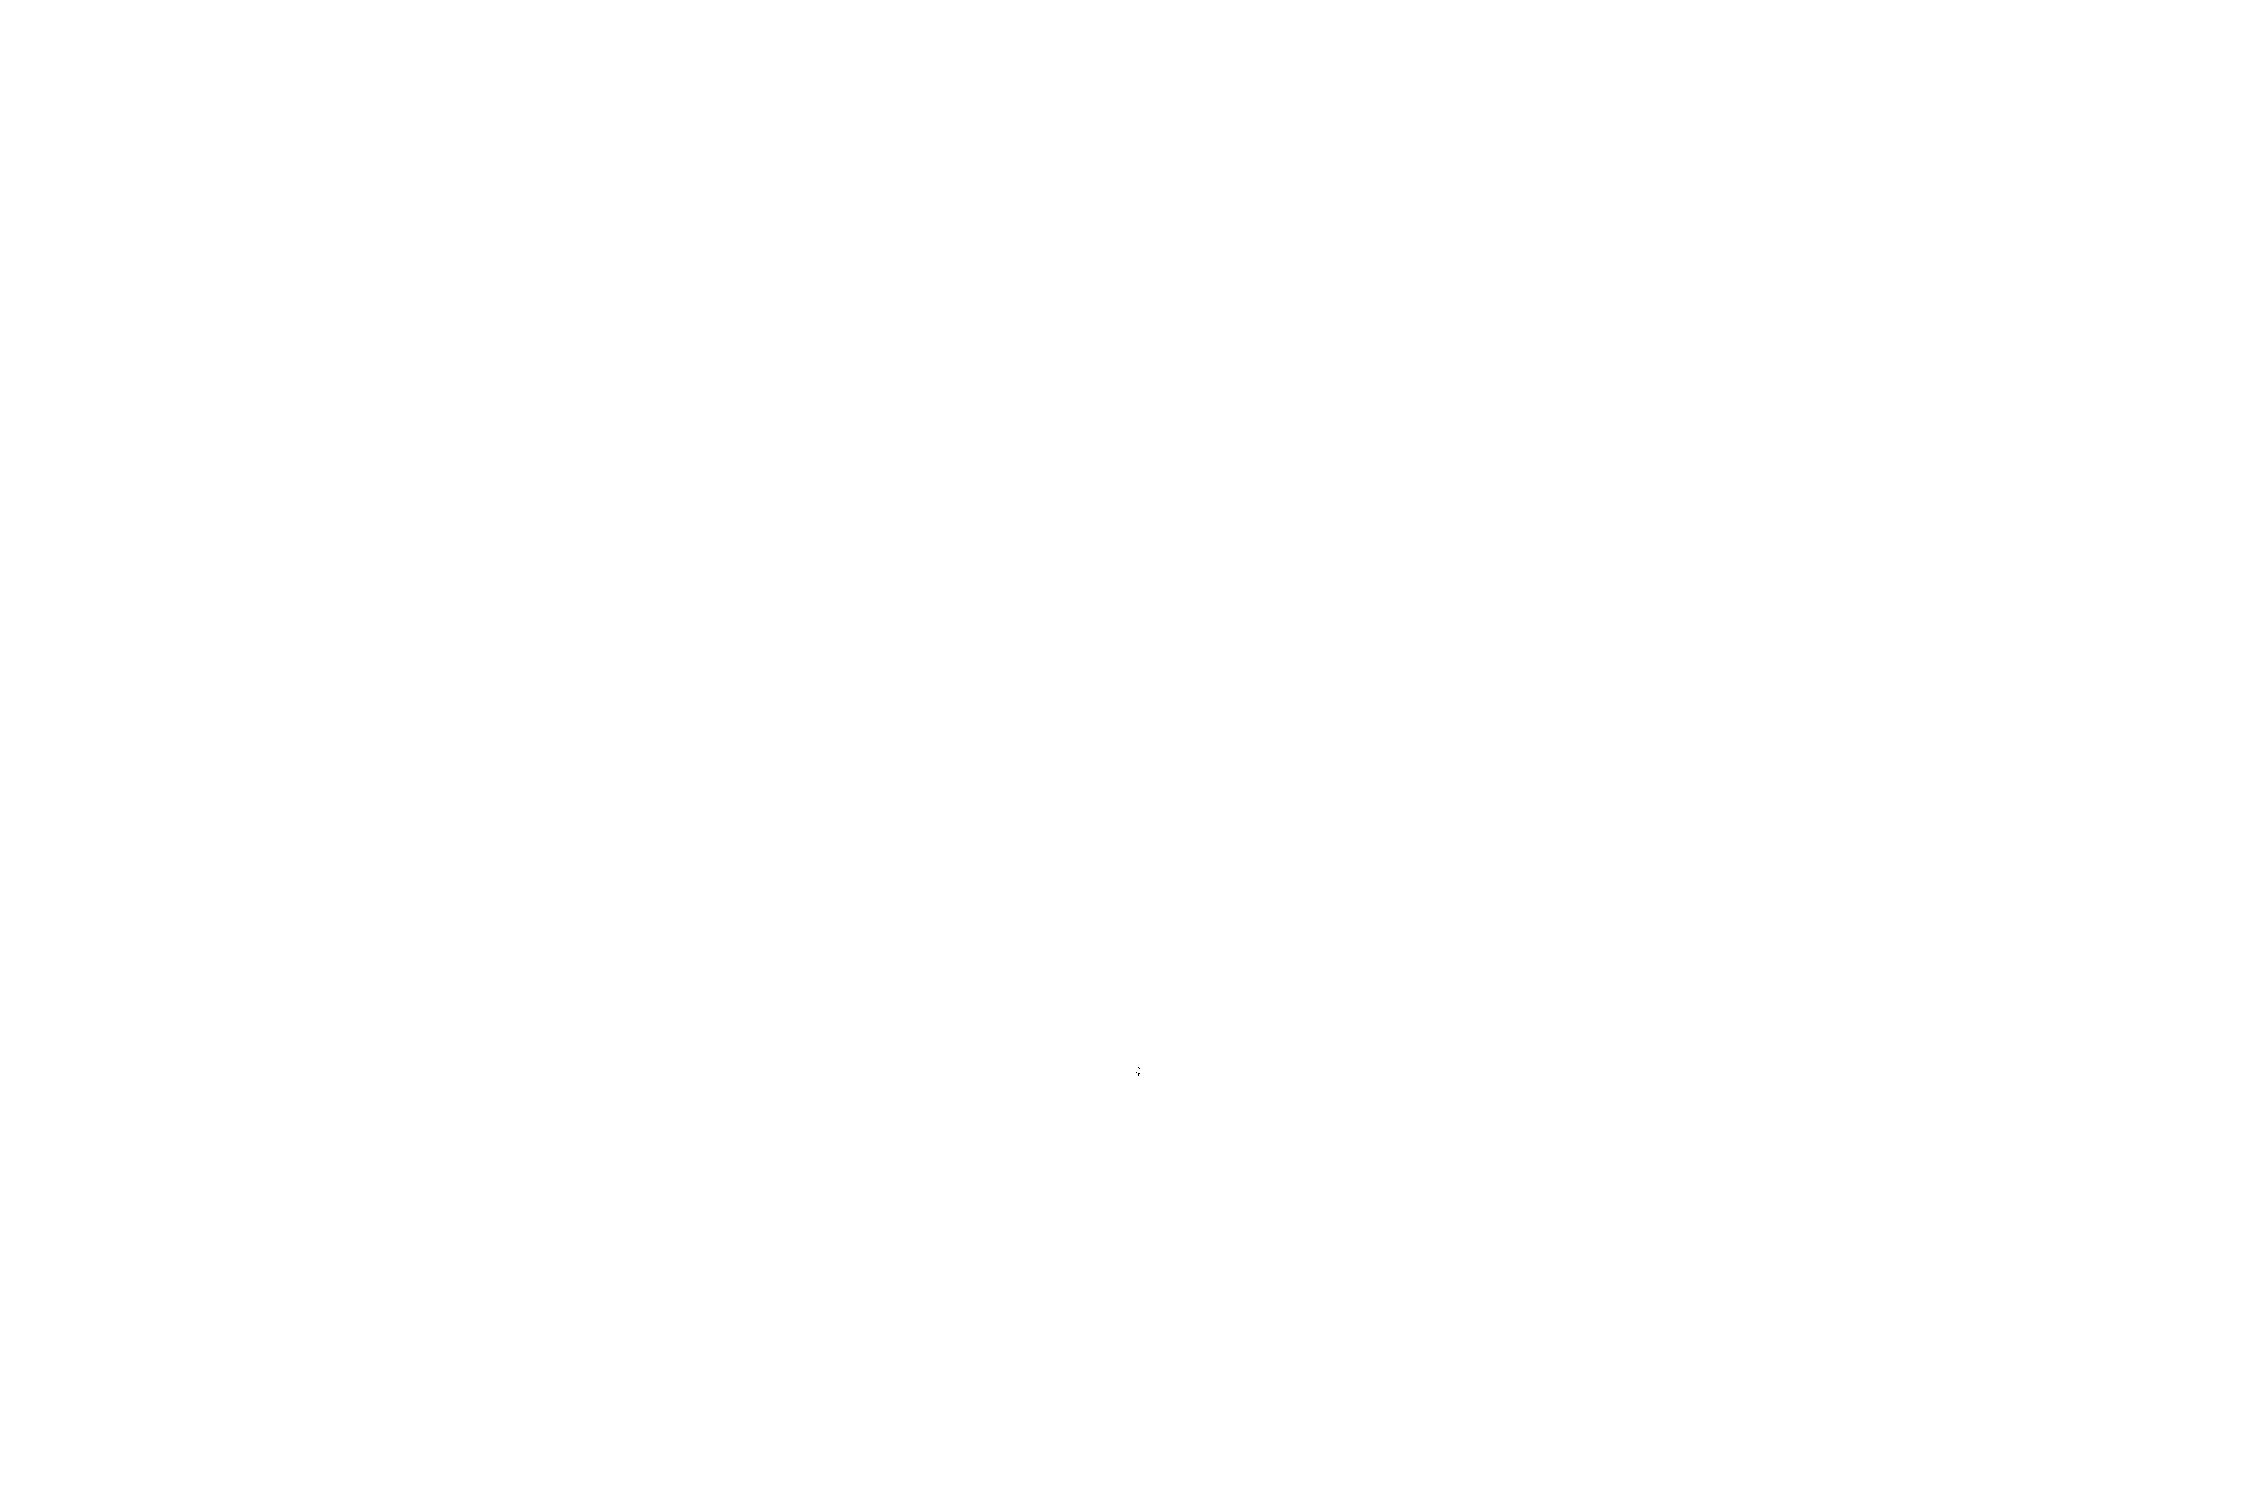 OFFICIAL SELECTION @ MOSCOW SHORTS WHITE- September 2019 - LAURELS (FEATHERS)